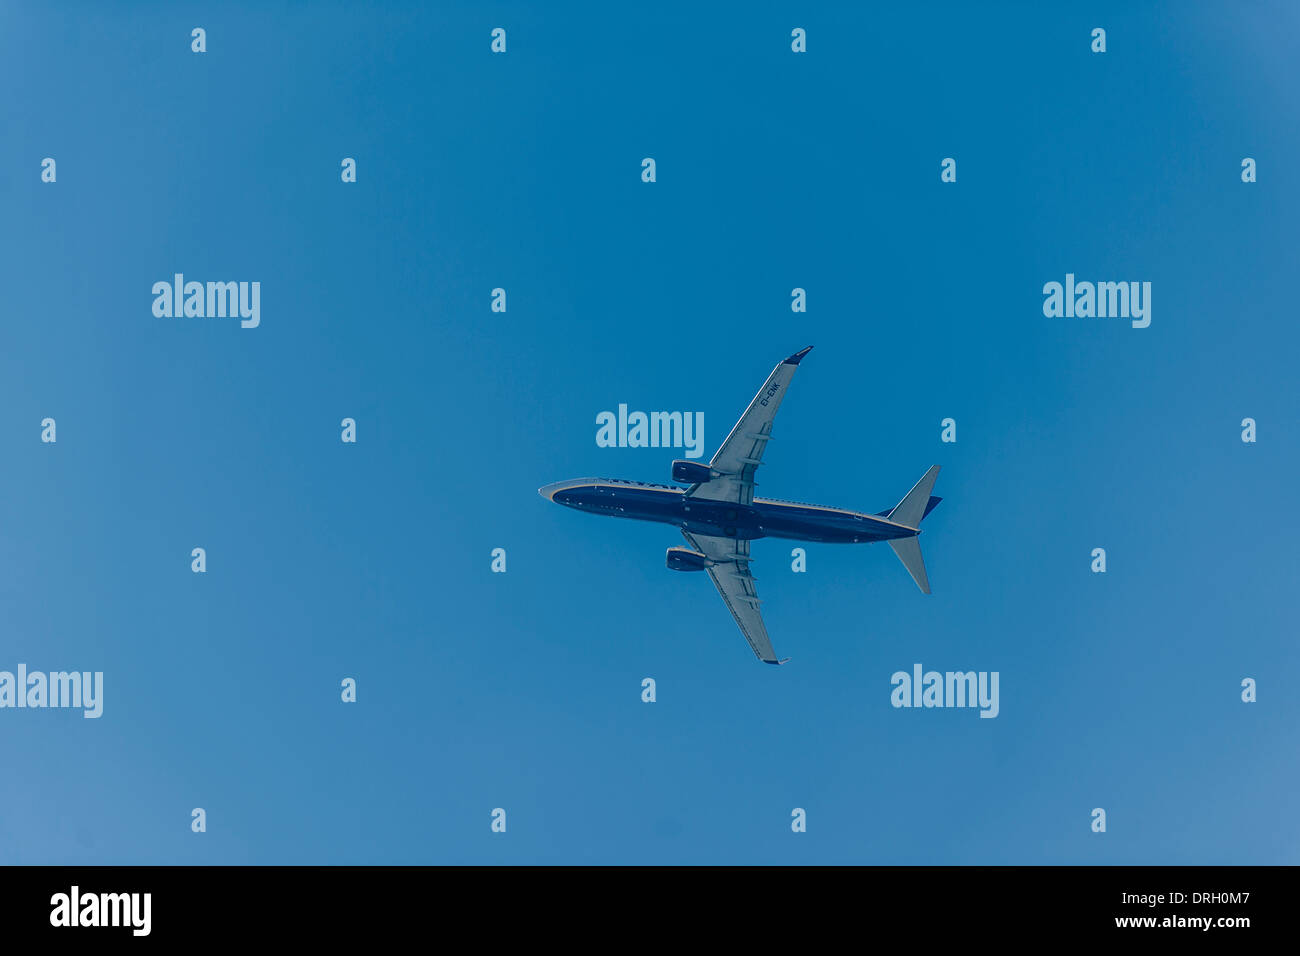 Flugzeug am Himmel - airoplane in the sky - Stock Image